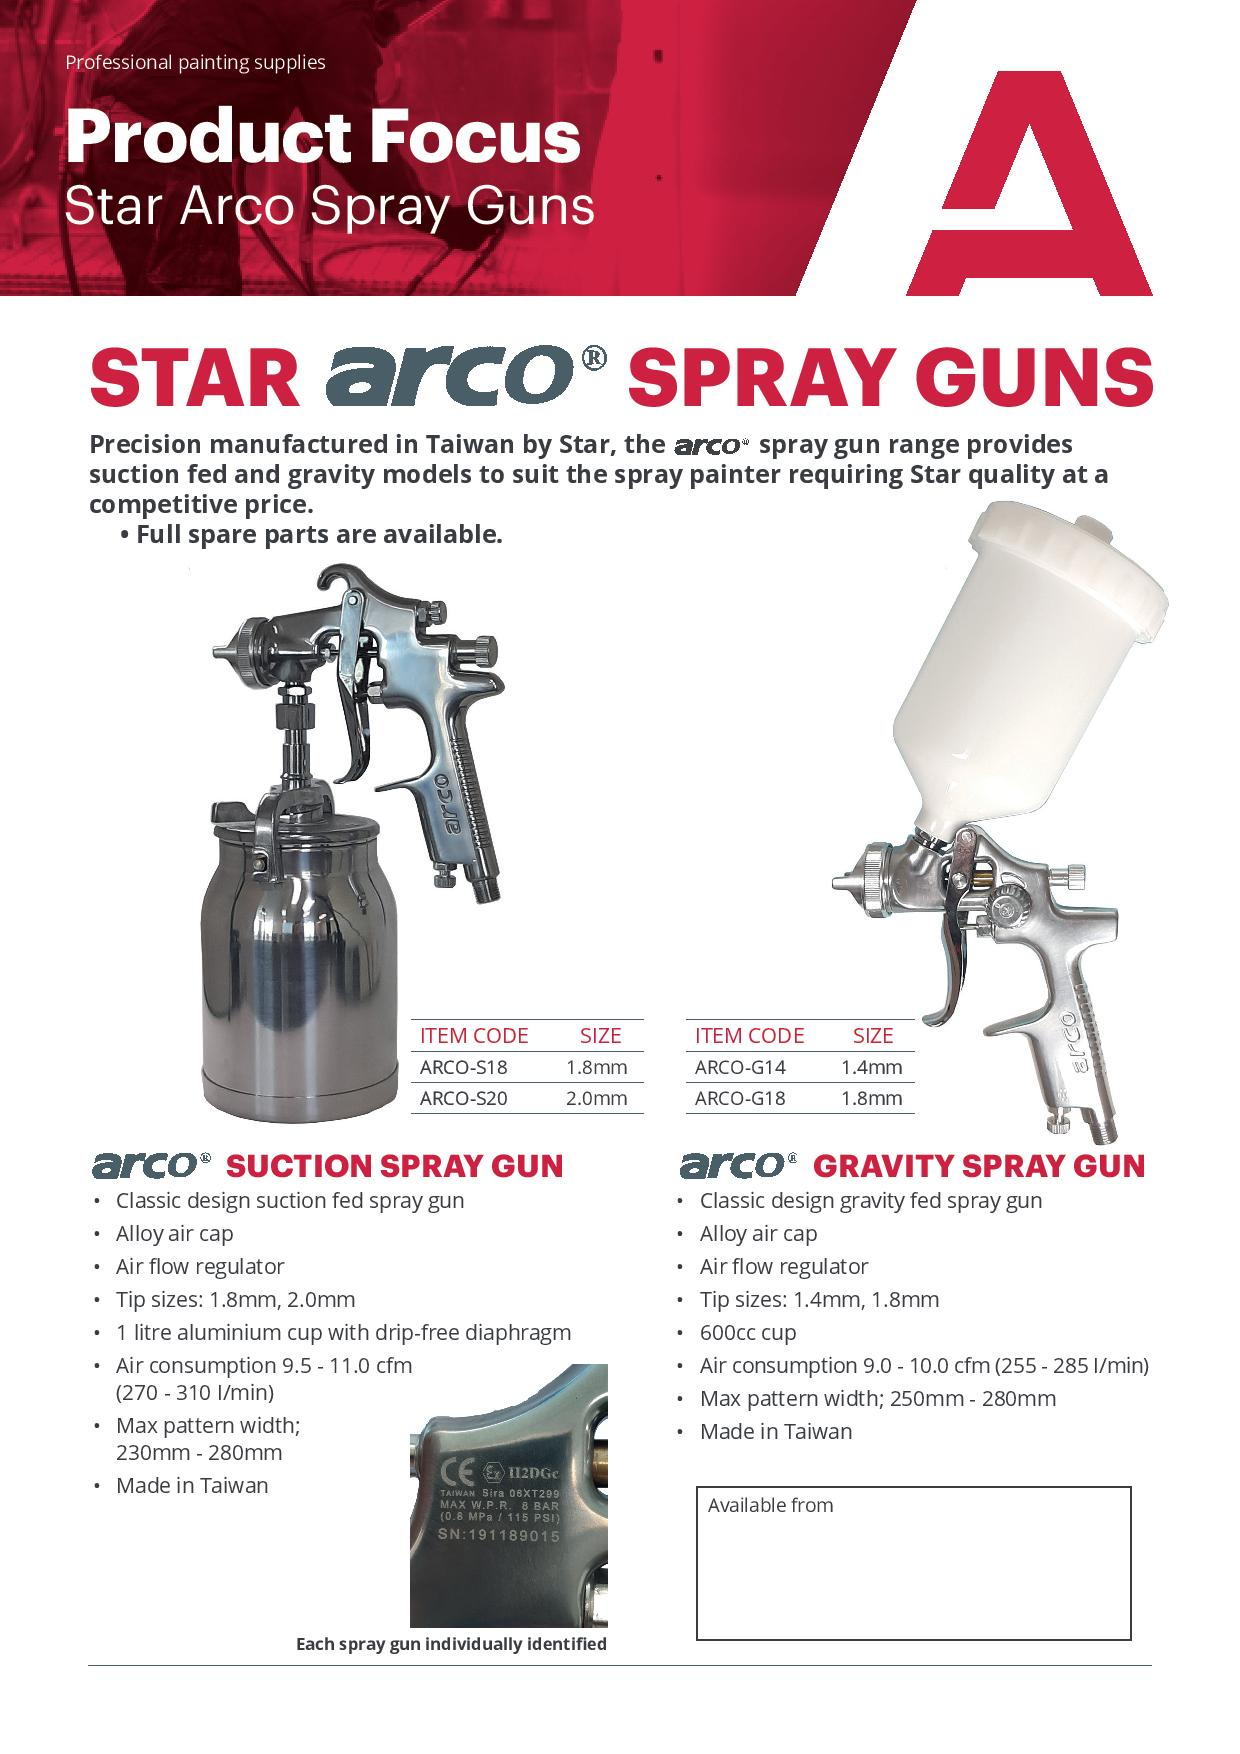 Star Arco Spray Guns